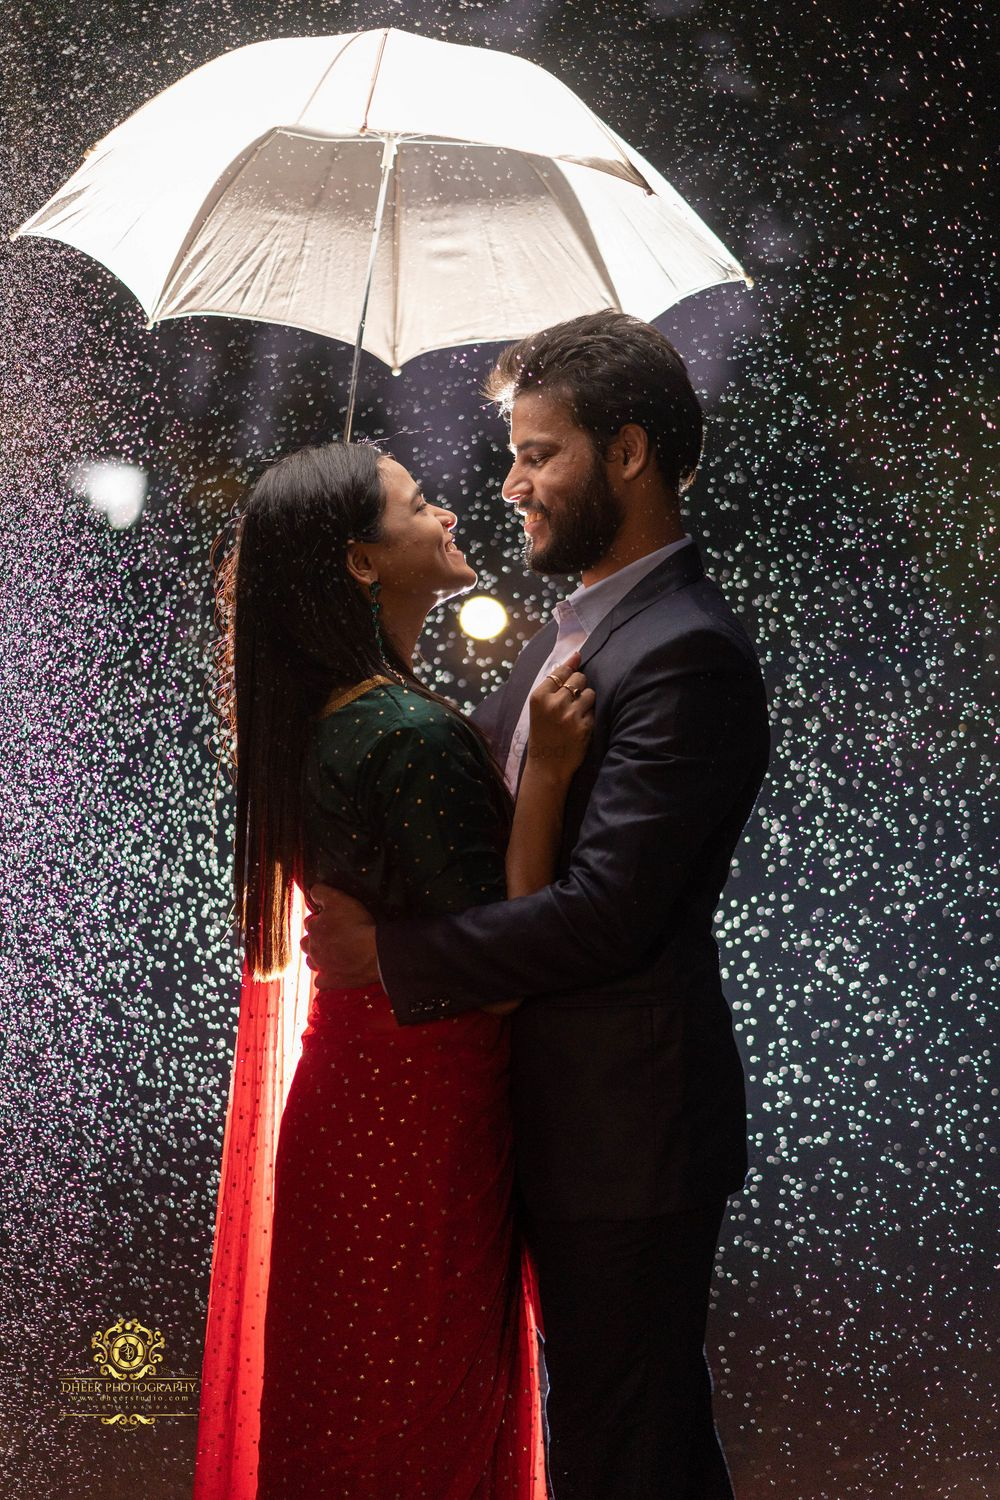 Photo From Surbhi & Kailash - By Dheer Photography